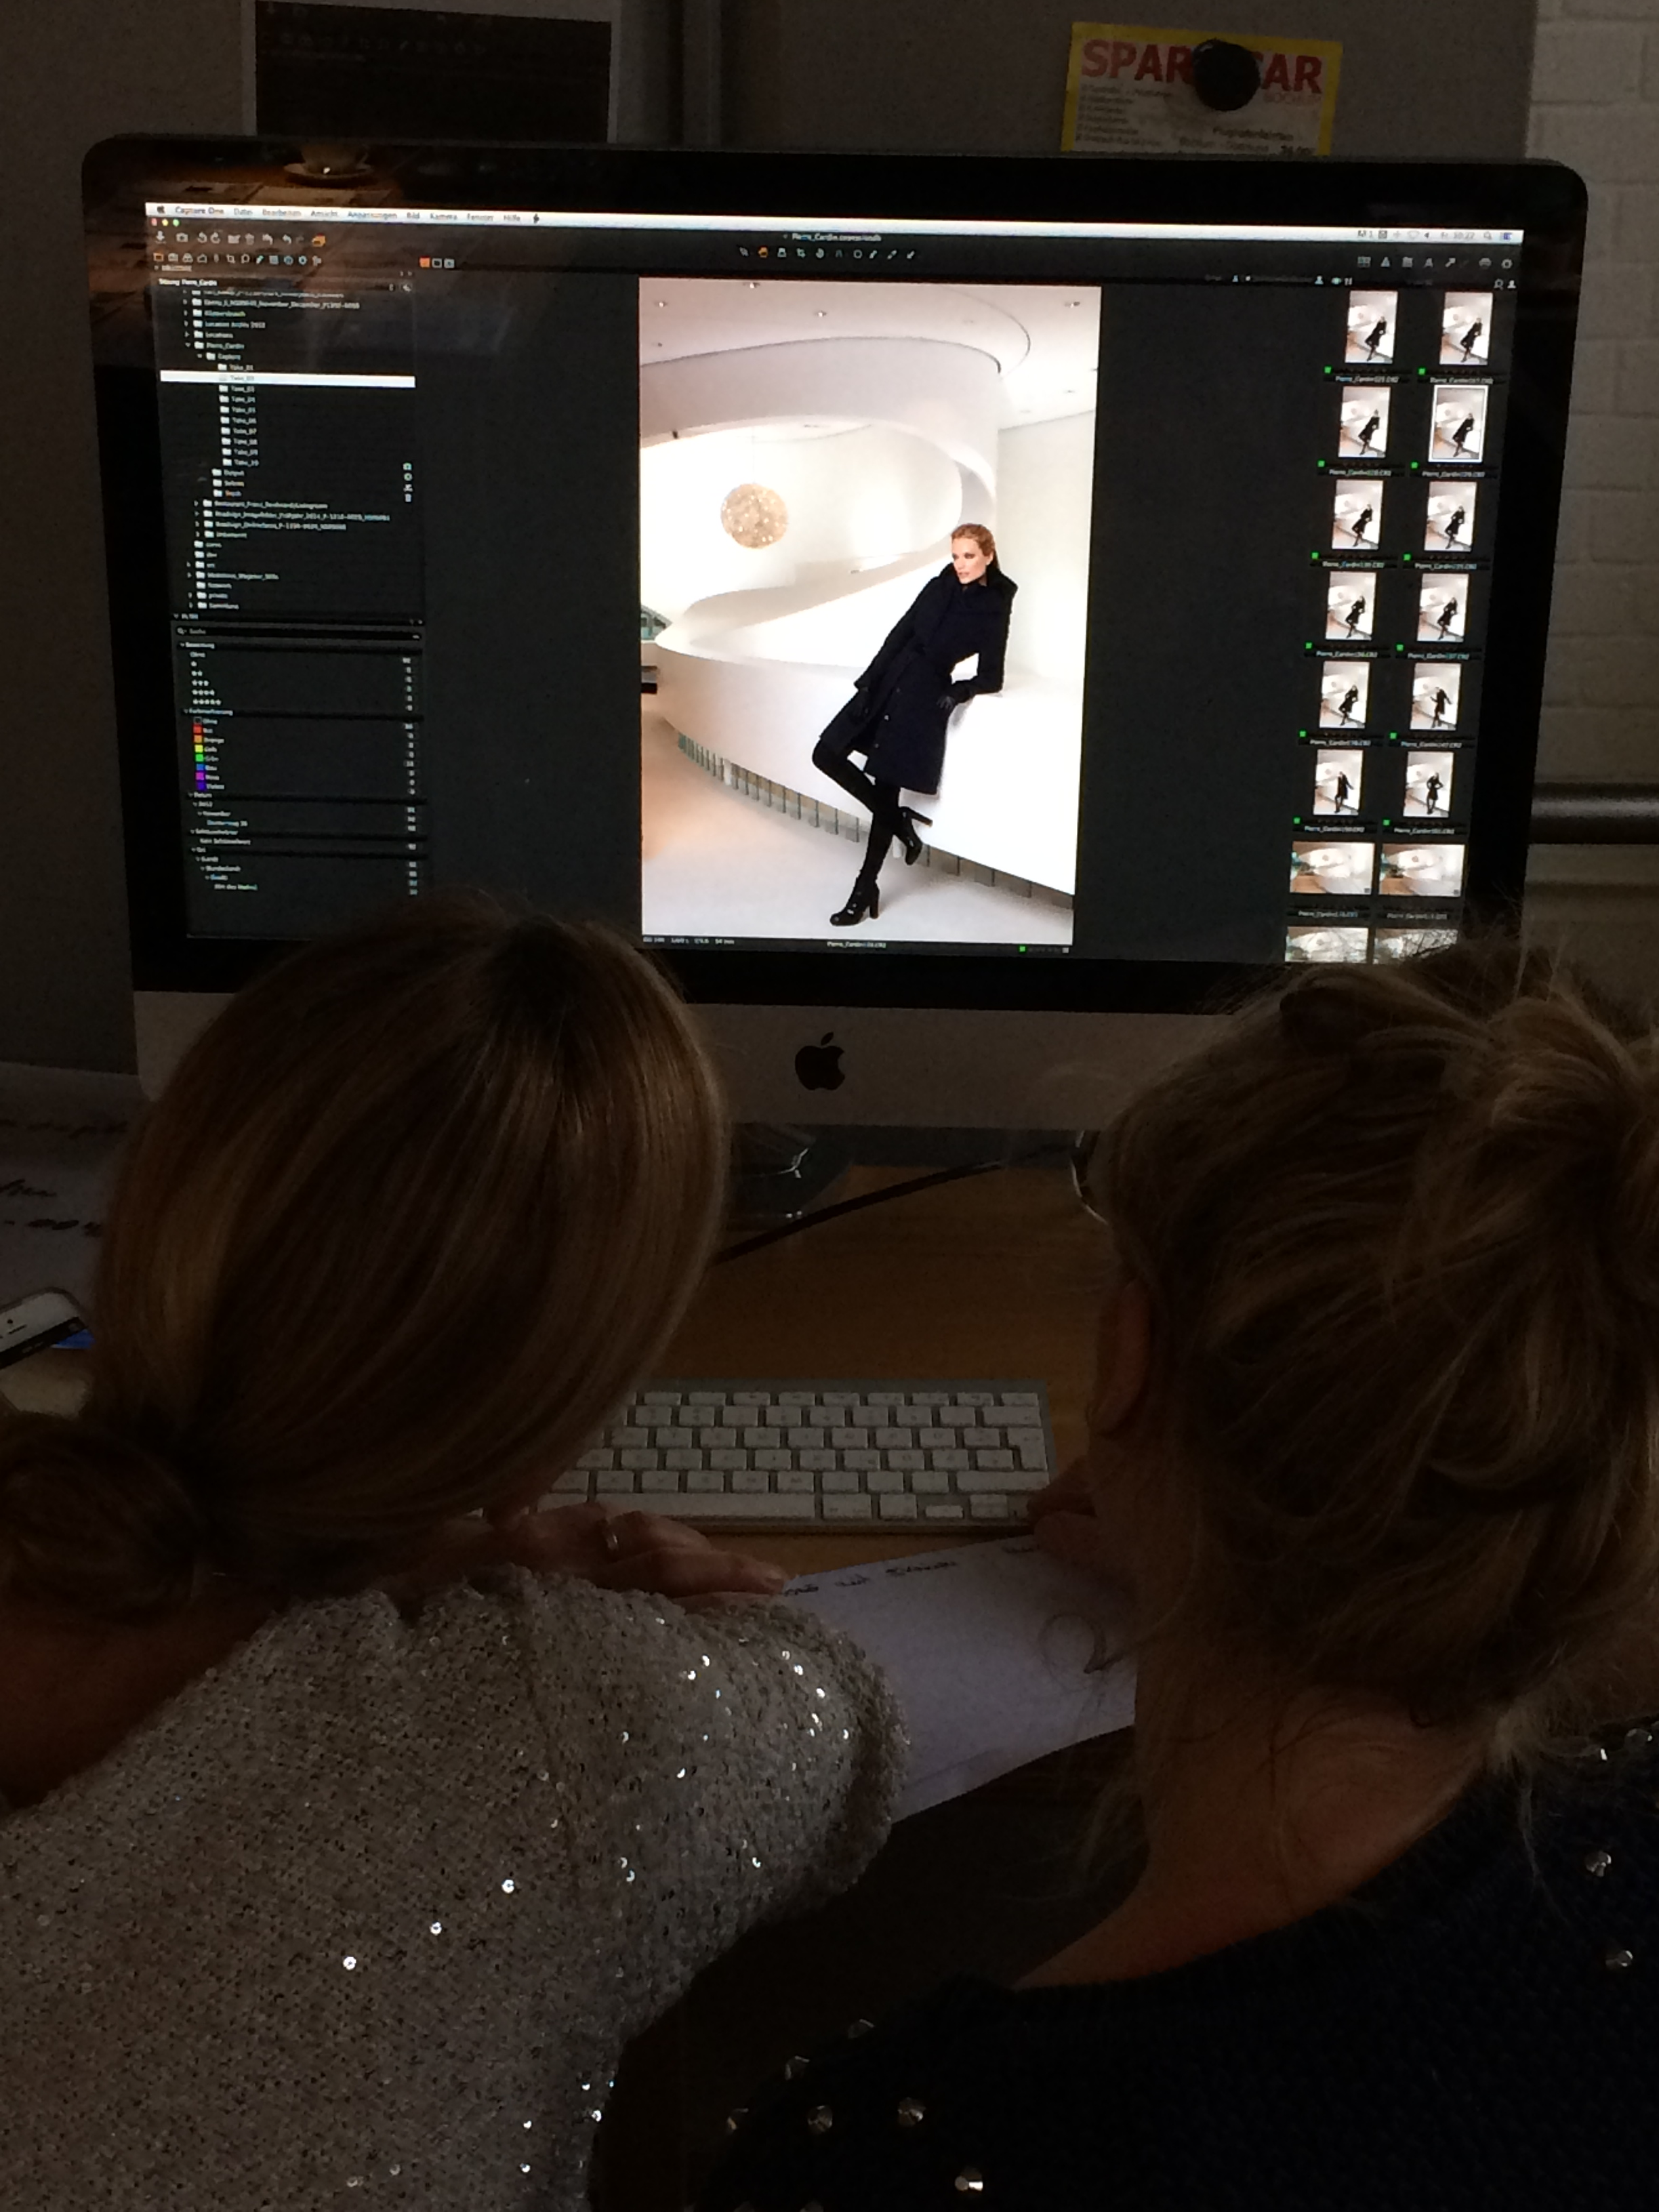 """Dusseldorf, Germany. On Pierre Cardin Winter campaign set. The client and the art director choosing the best shot. """